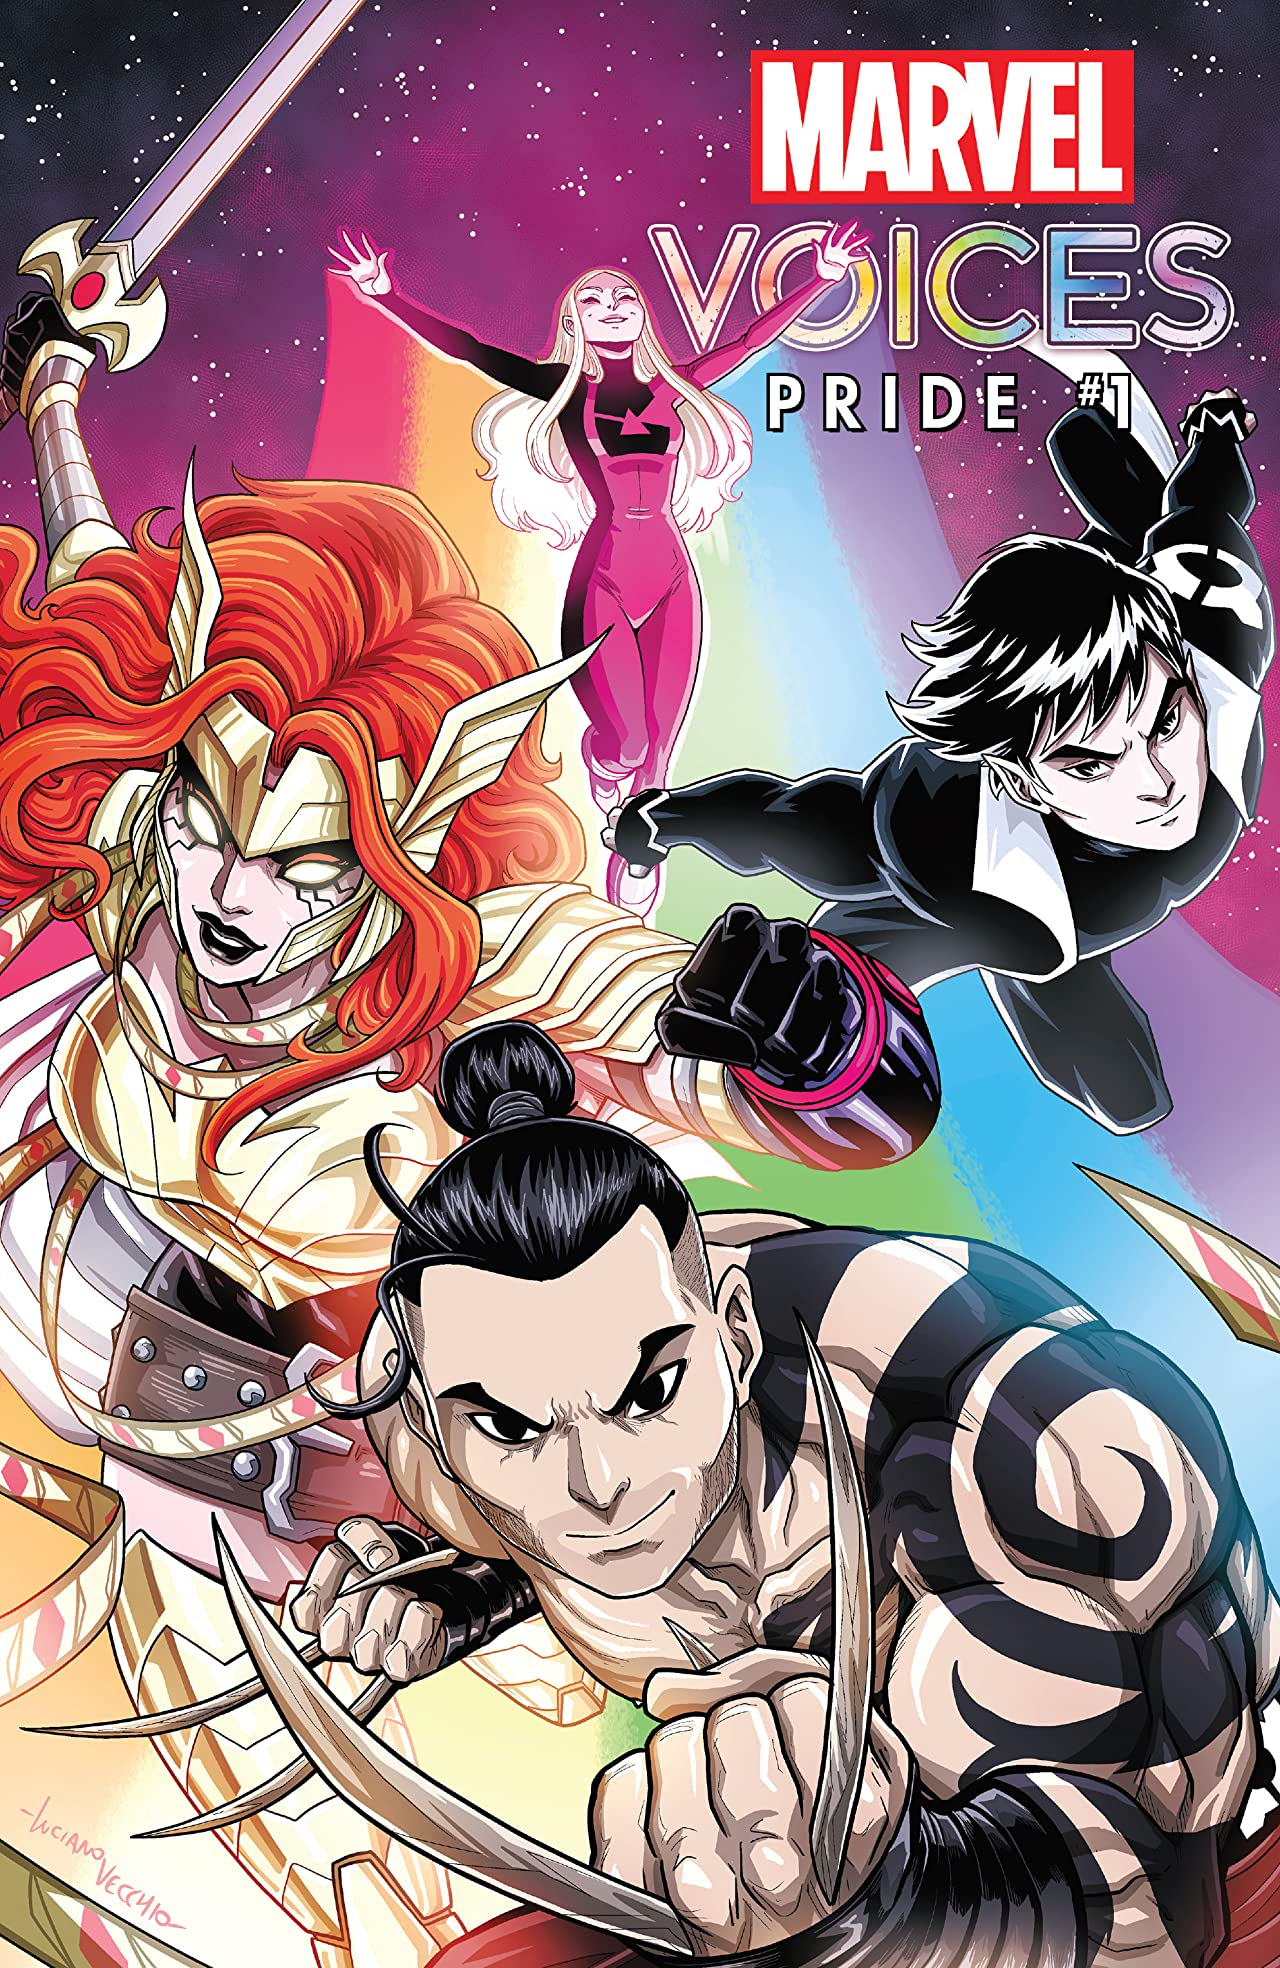 Marvel's Voices: Pride #1